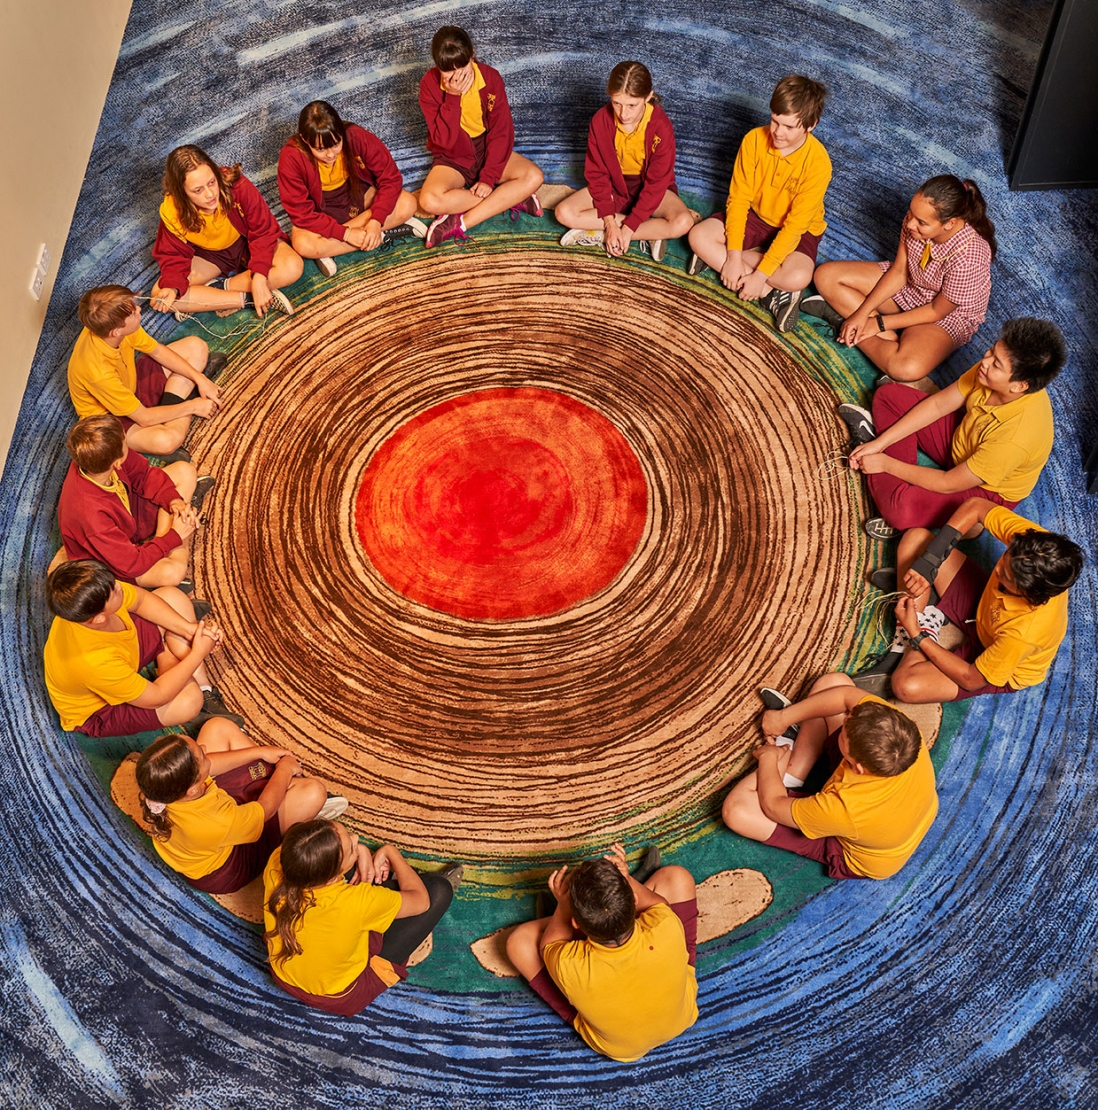 Students seated around circular painted pattern on floor.